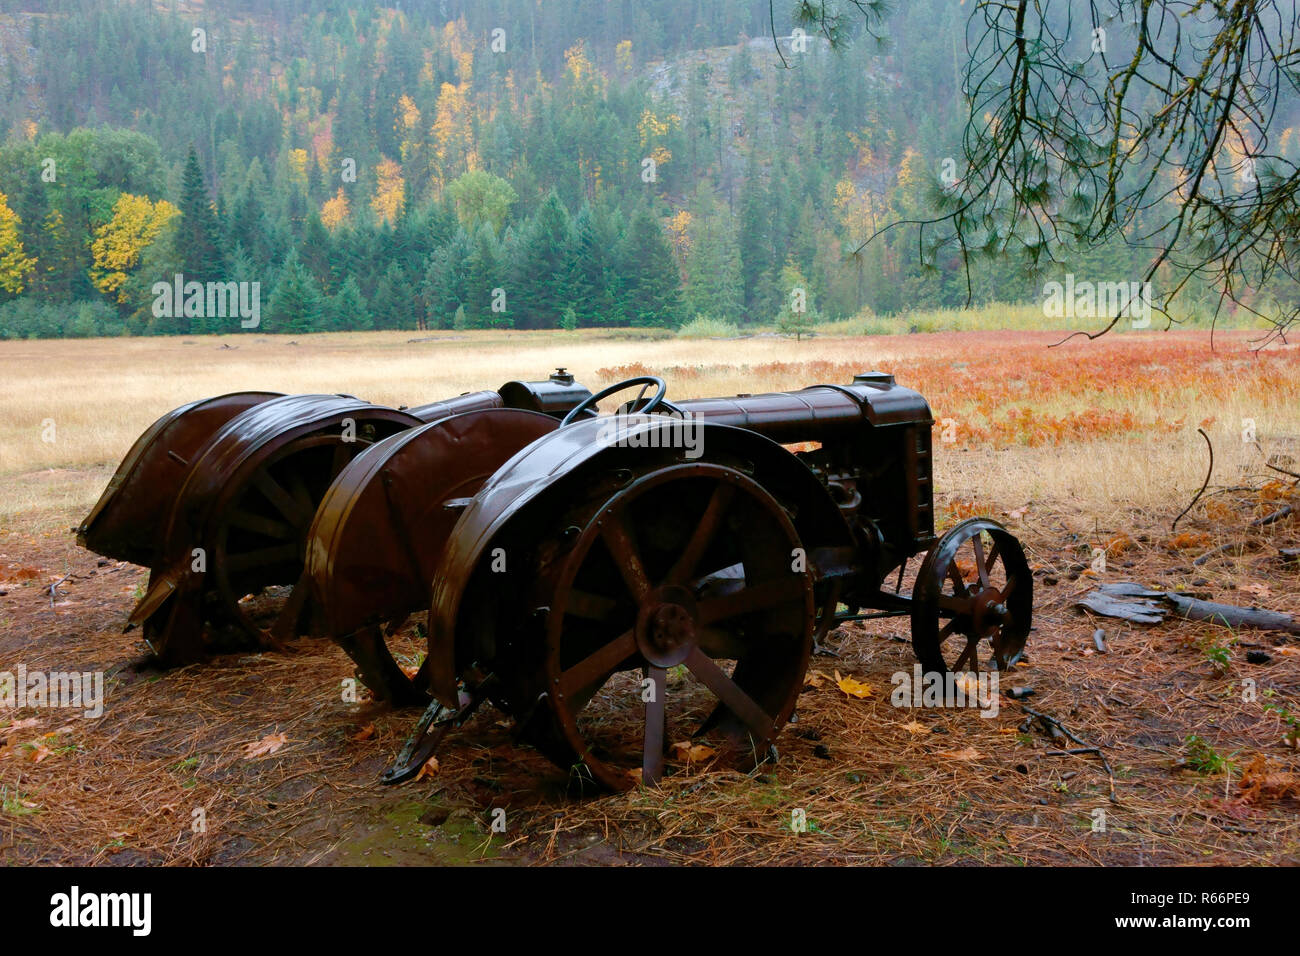 Two old tractors in Stehekin's old historic Buckner Orchard. - Stock Image